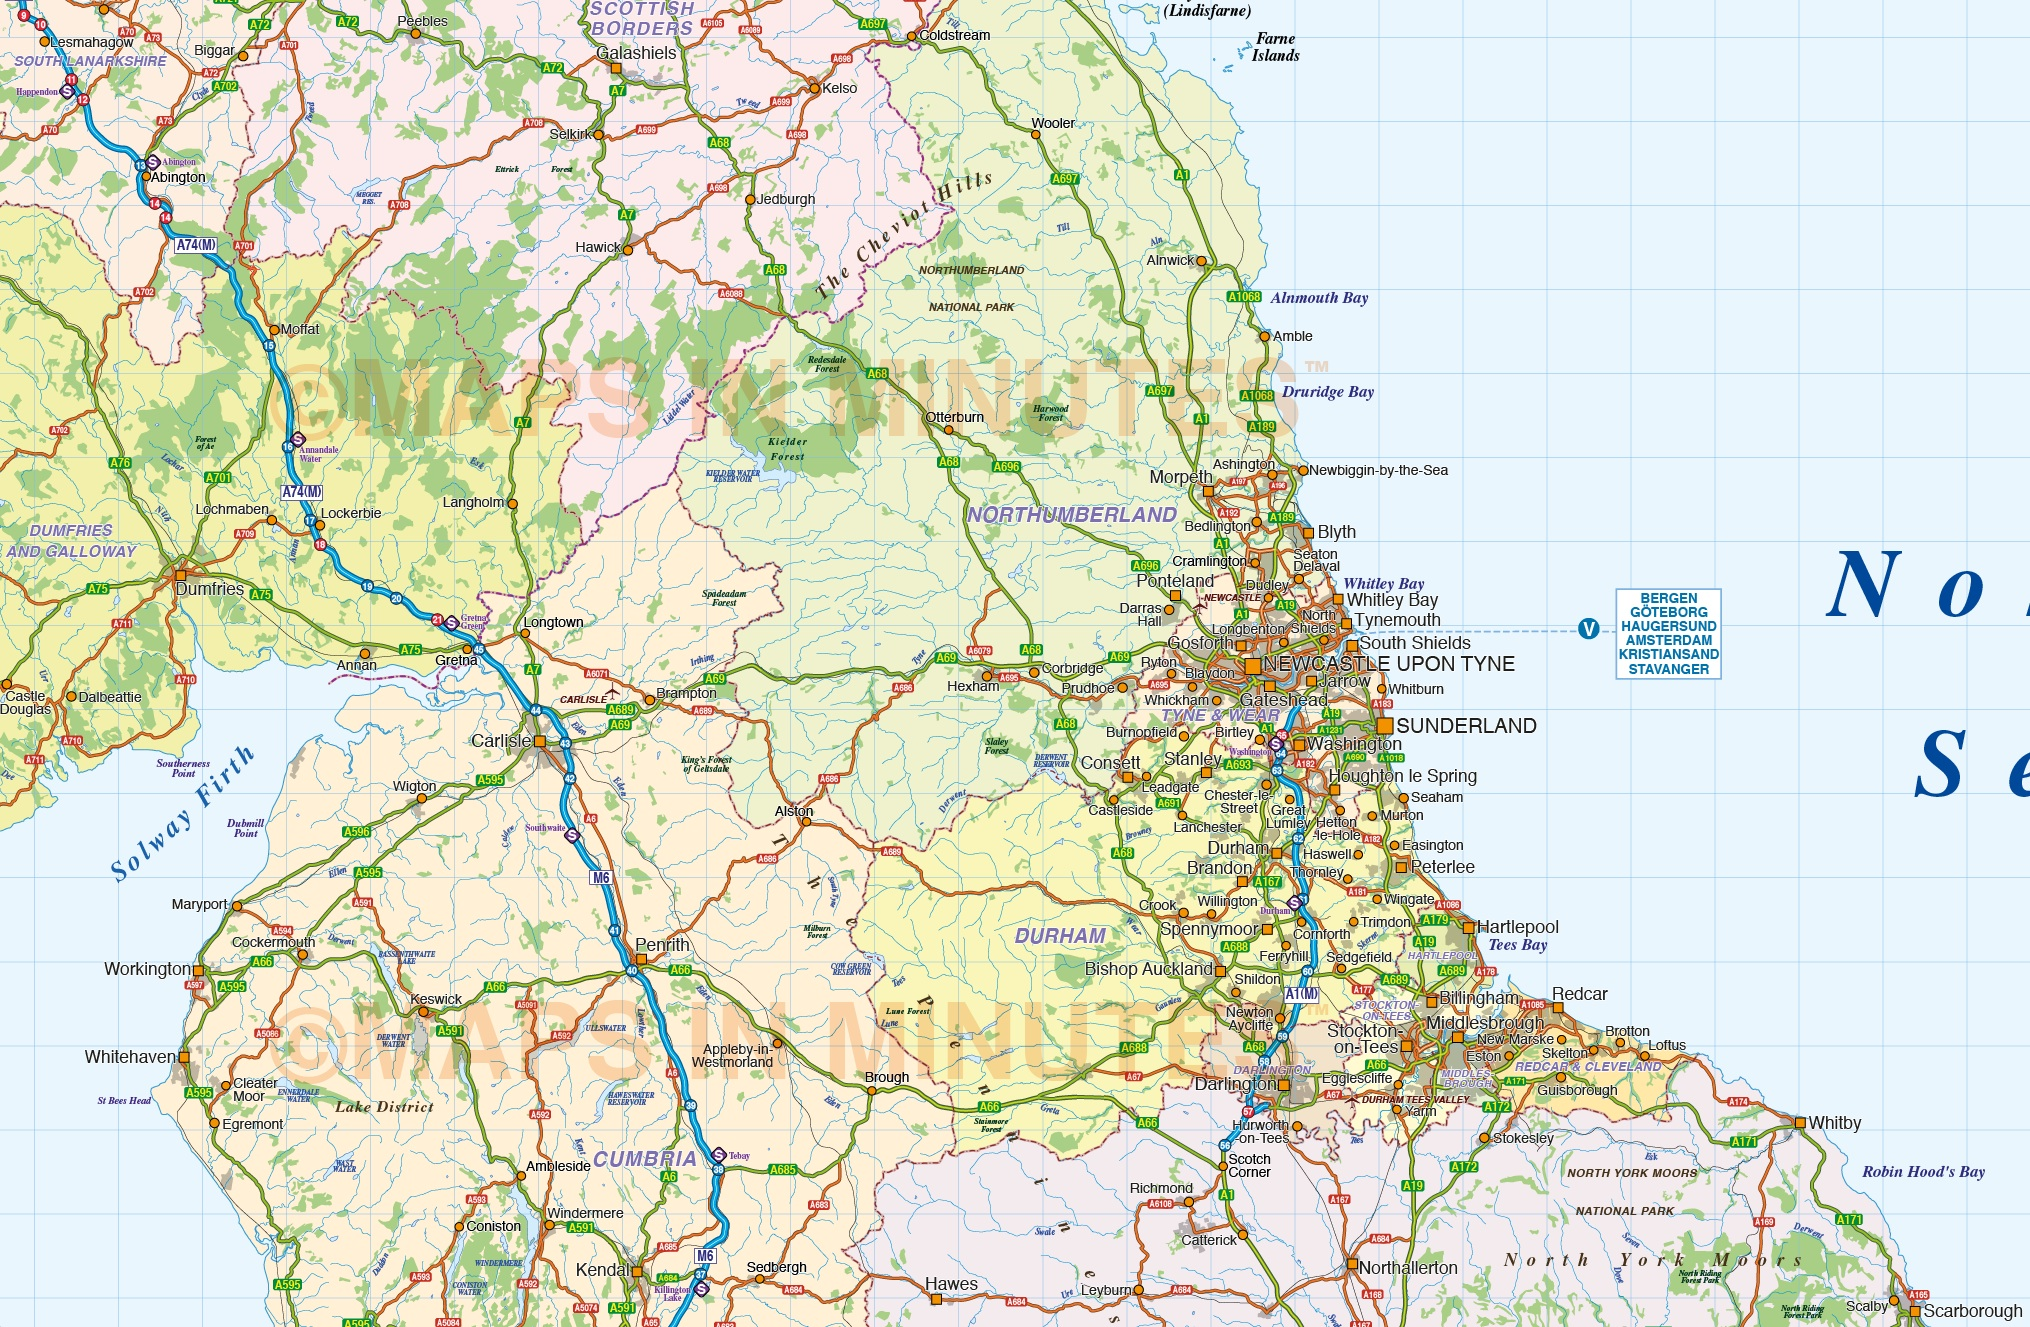 North Of England Map.Digital Vector North England County Road And Rail Map 1m Scale With